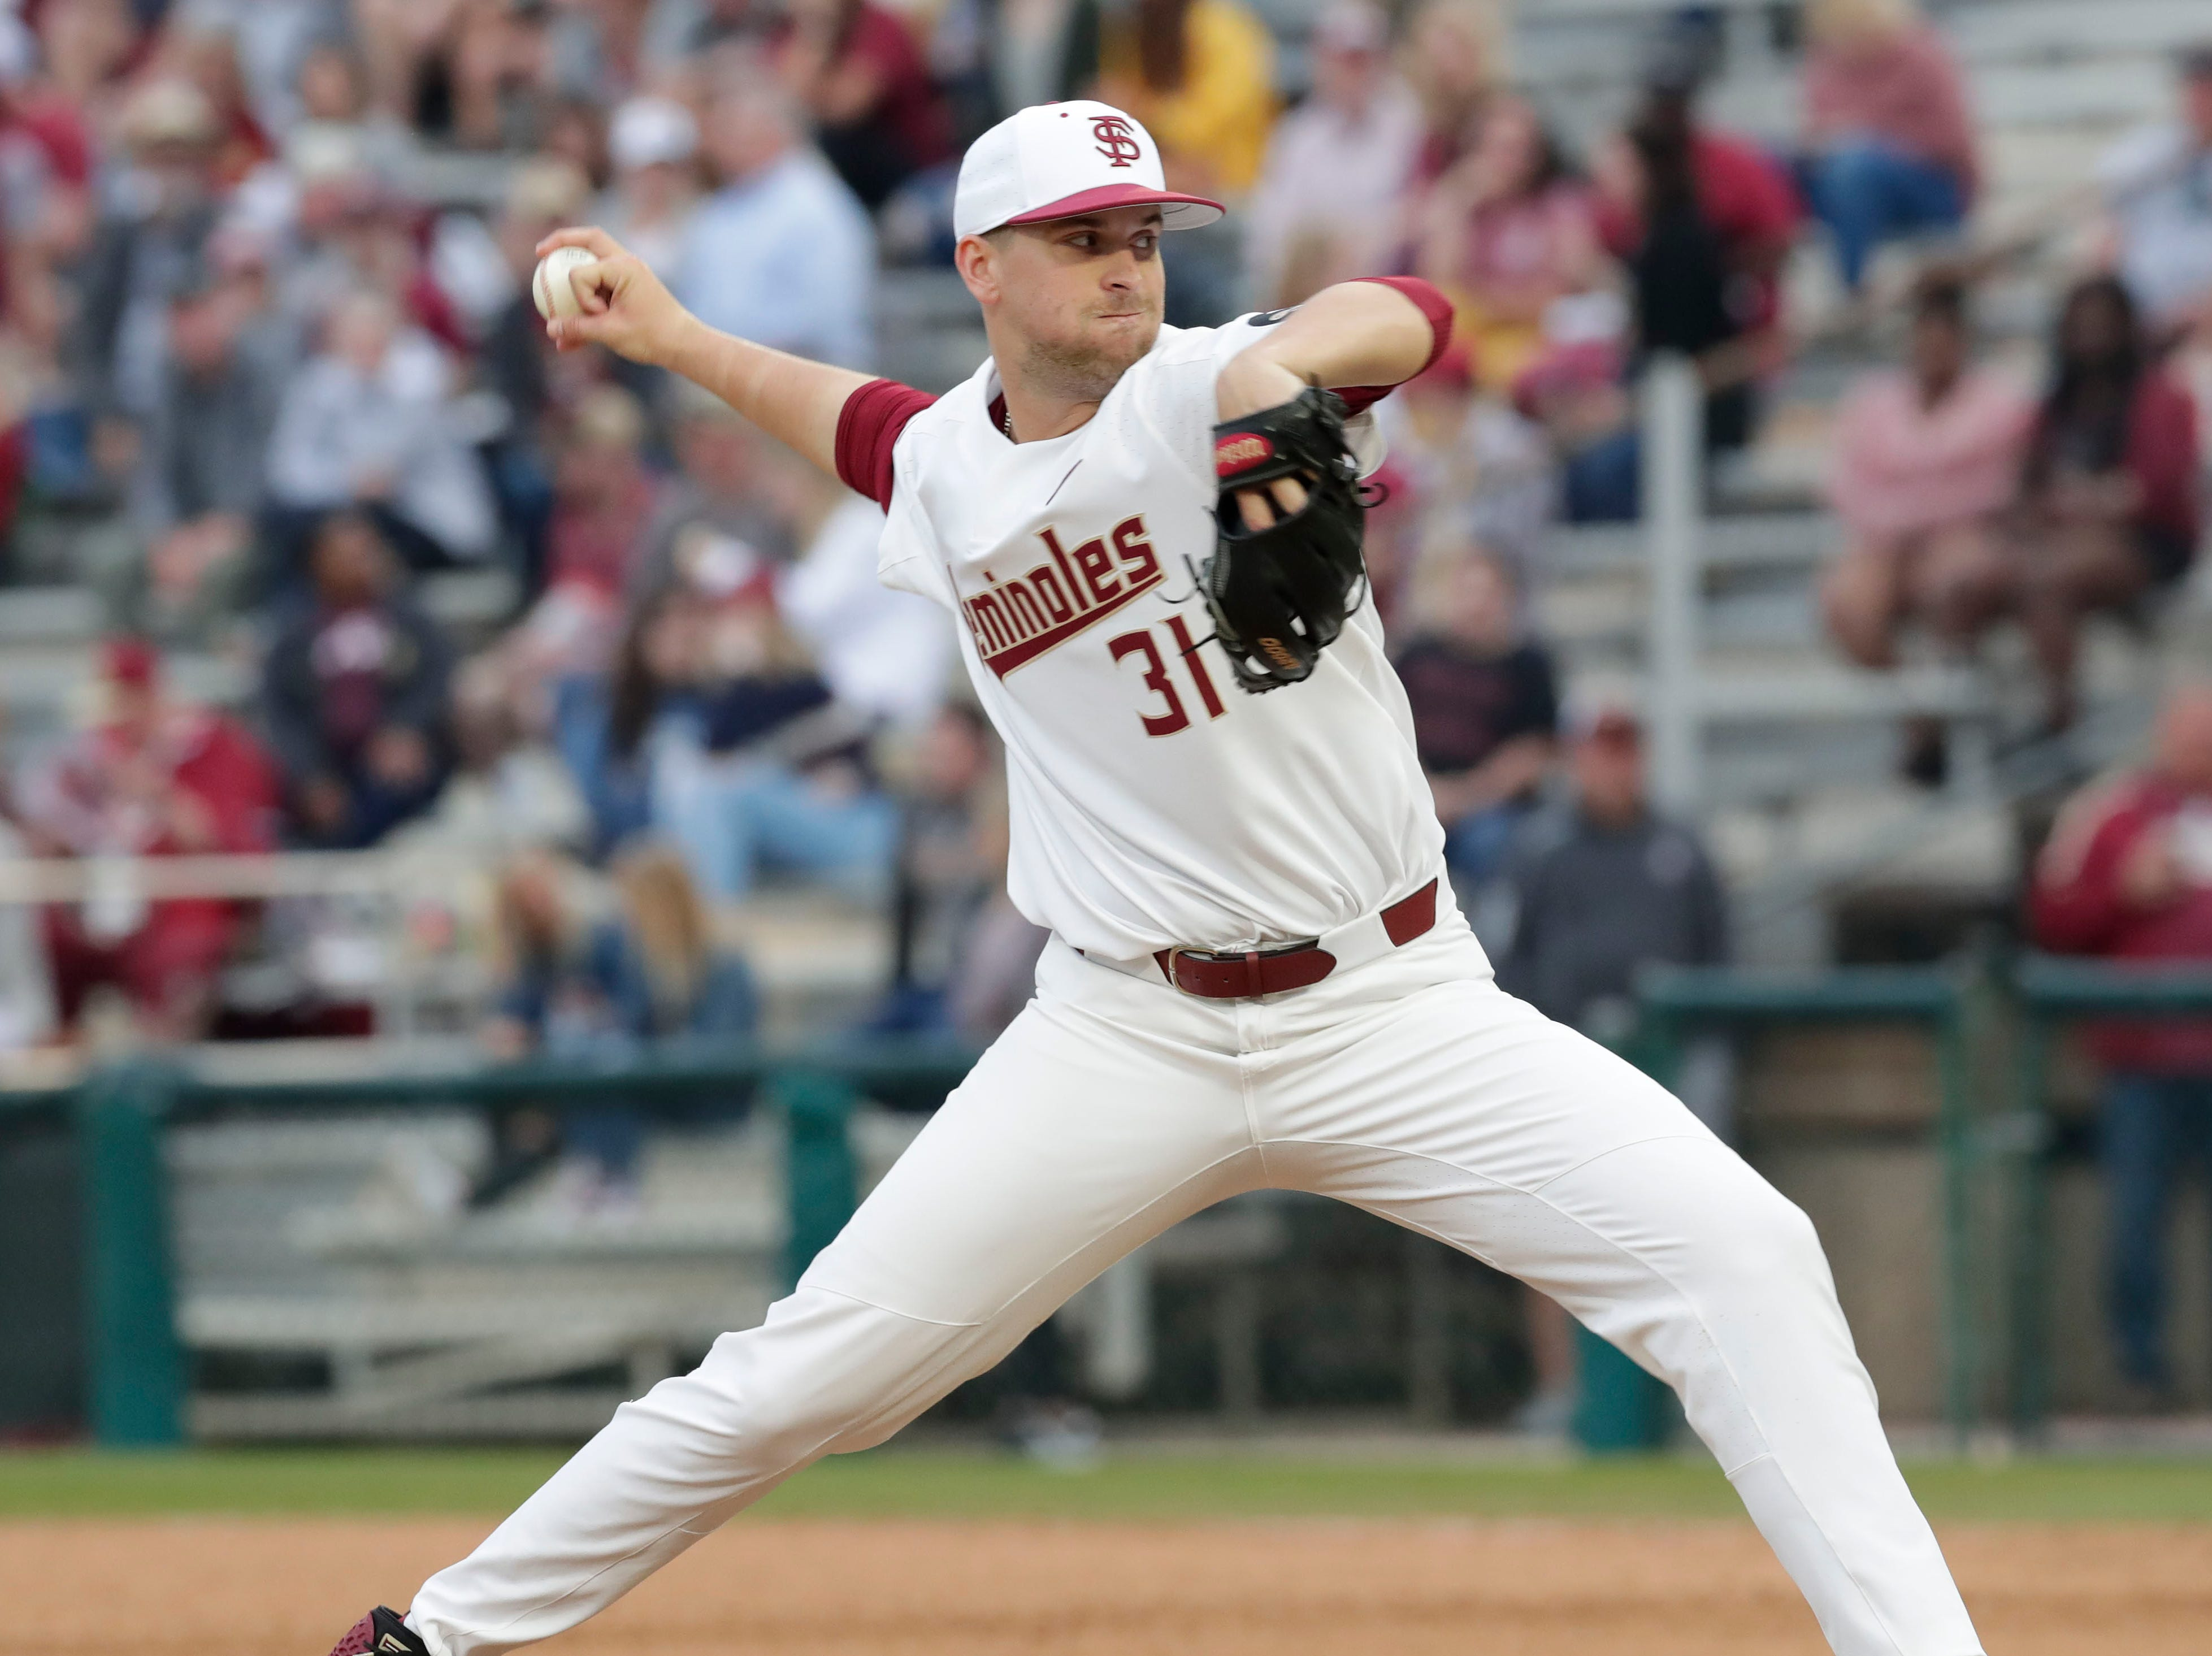 Florida State Seminoles right handed pitcher Conor Grady (31) throws a pitch as the Florida State Seminoles host the Maine Black Bears in the 2019 season opener game, Friday Feb. 15, 2019.